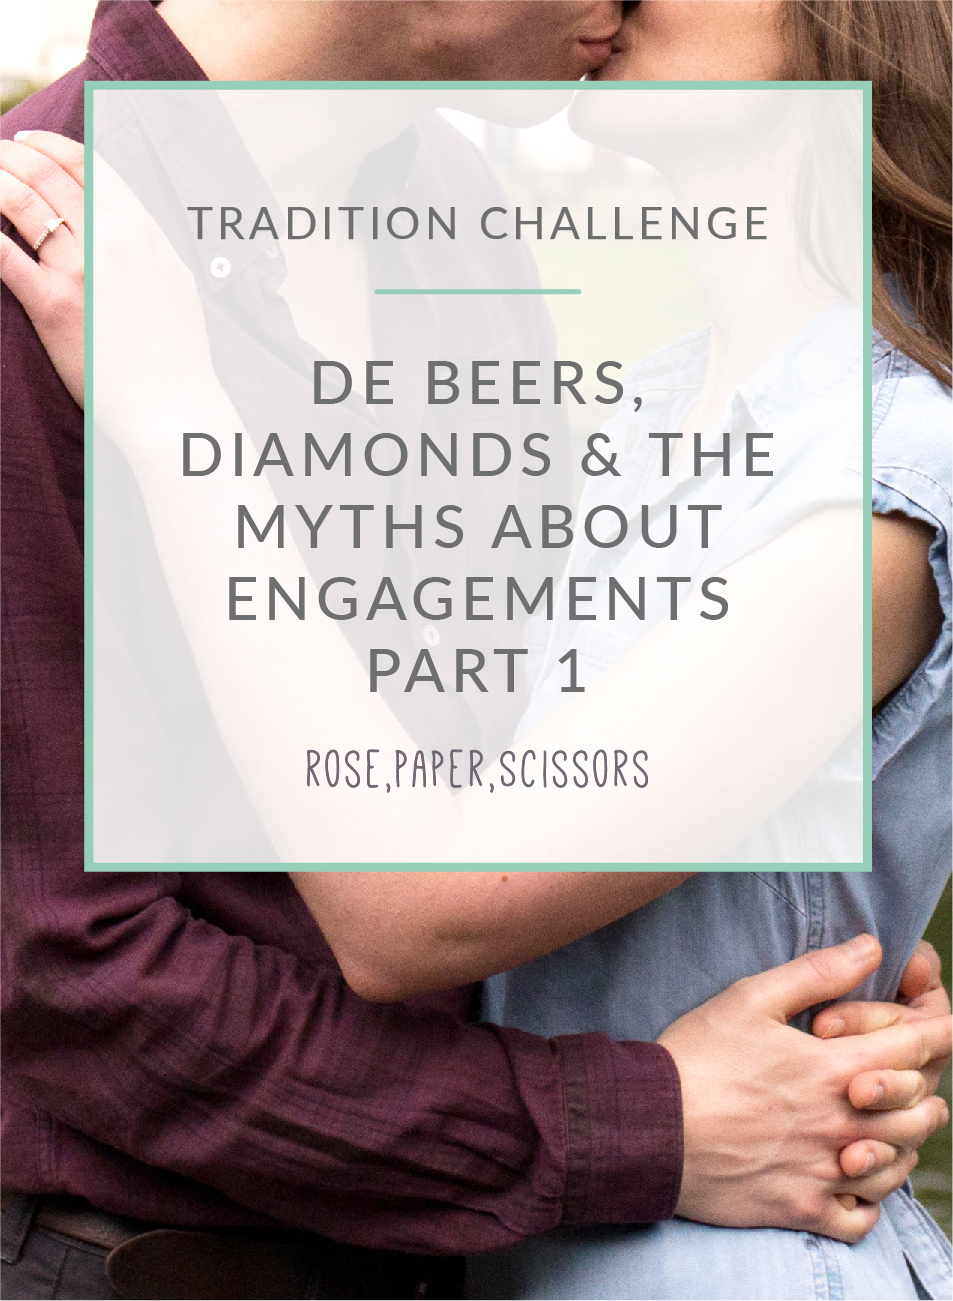 De Beers, diamonds and the myths about engagements